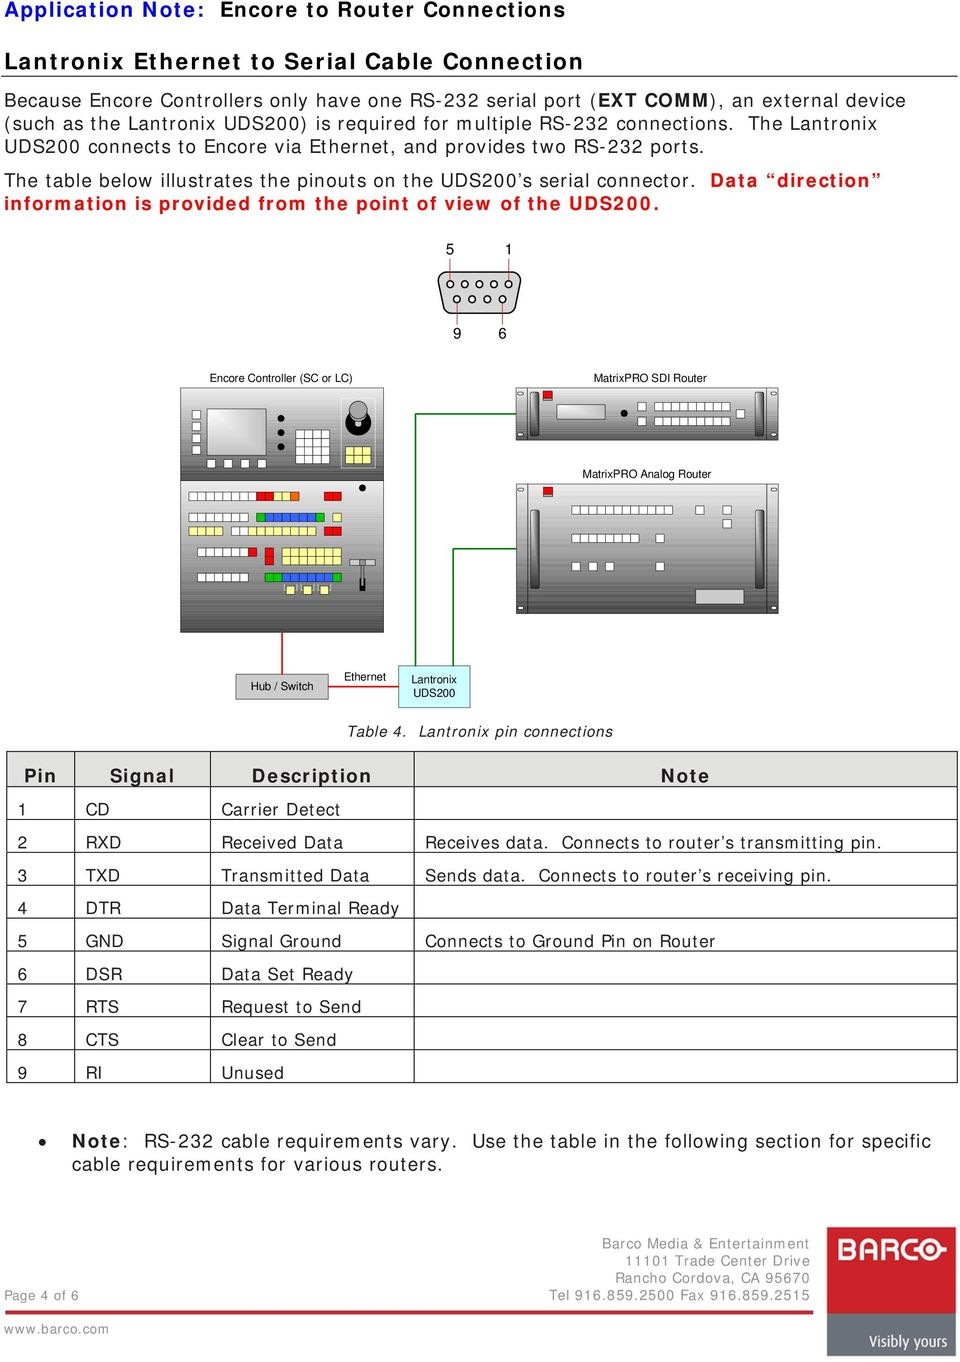 Data direction information is provided from the point of view of the UDS200.